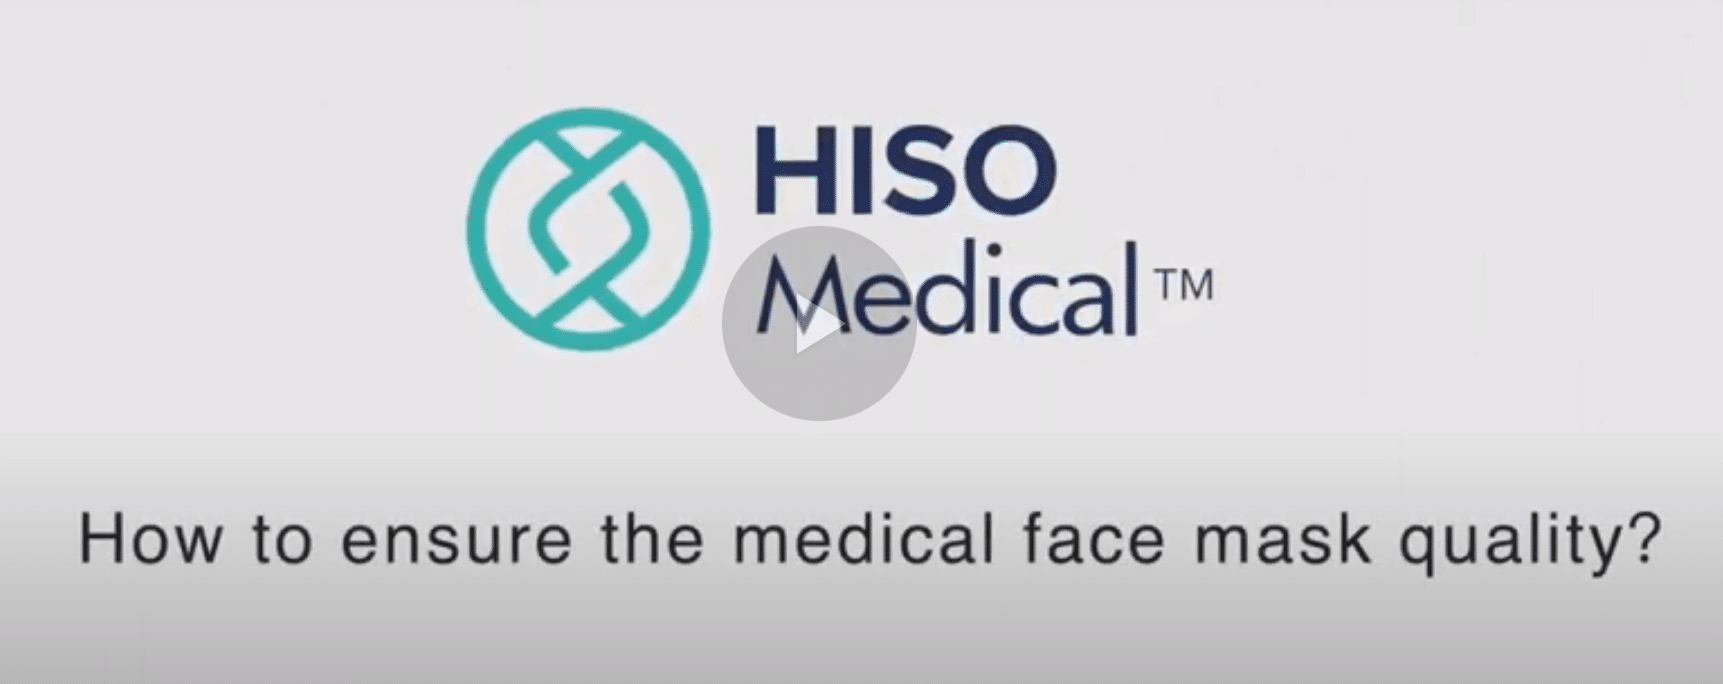 How to ensure the medical face mask quality1